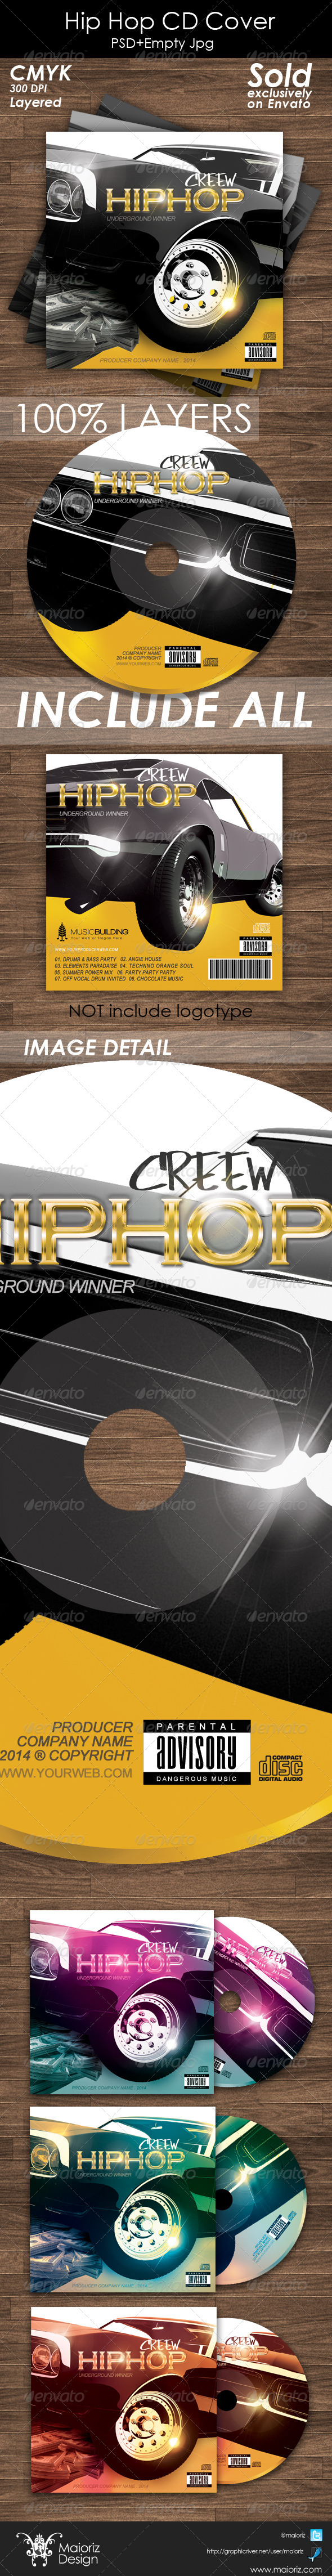 Hip Hop Cd Cover Artwork - CD & DVD artwork Print Templates